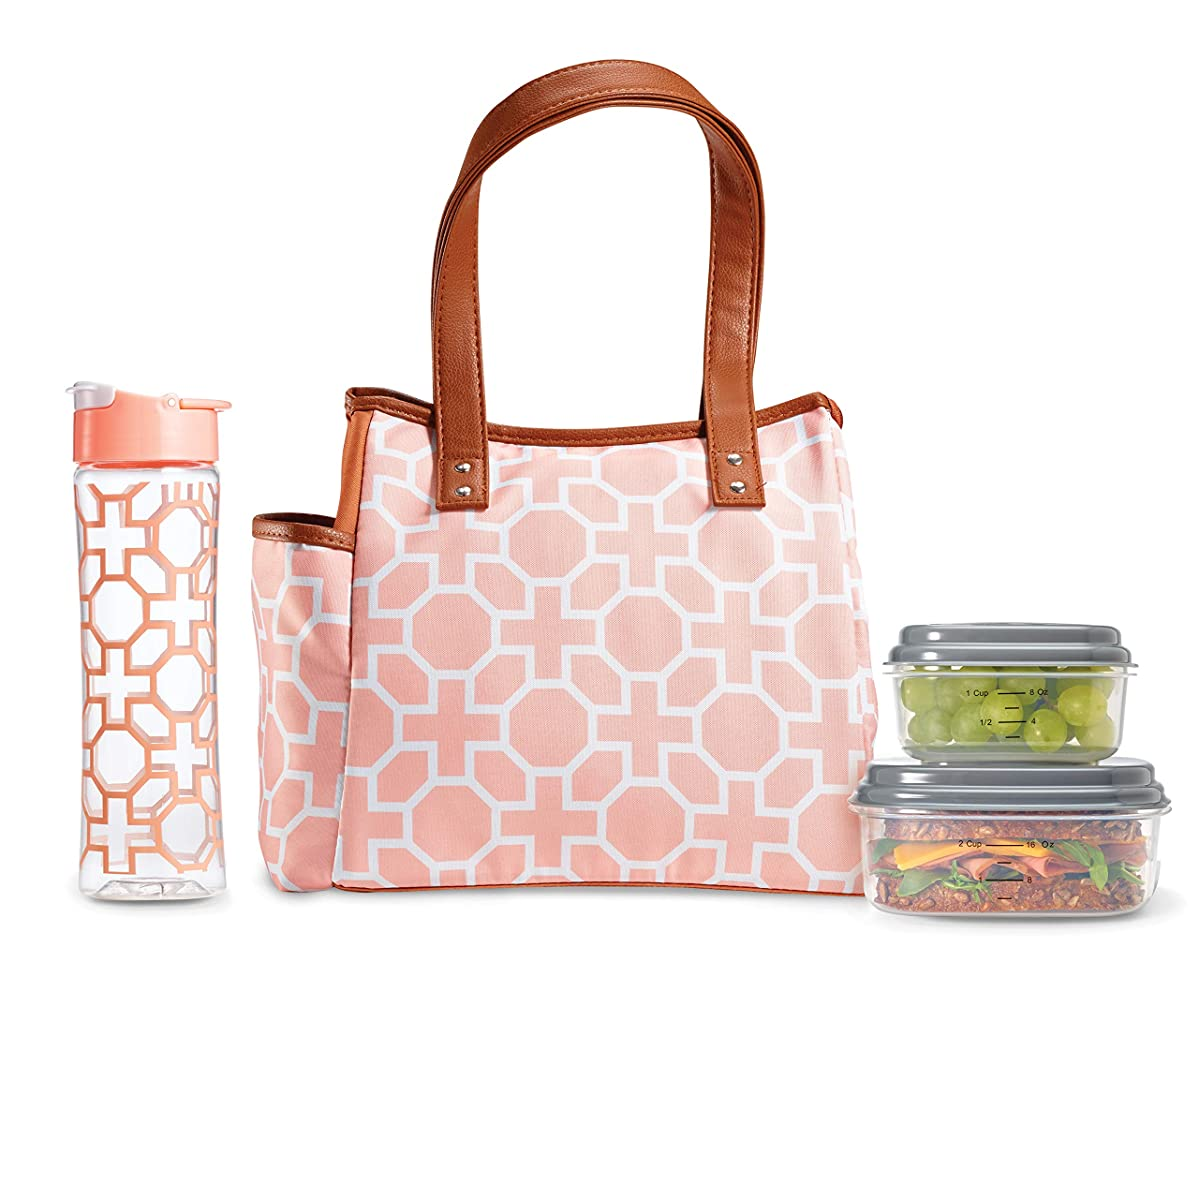 Fit & Fresh Insulated Lunch Bag Cooler Bag Tote Bag Kit for Women/Work/Picnic/Beach, Reusable Containers, Water Bottle, Westerly, Classic Trellis Blush